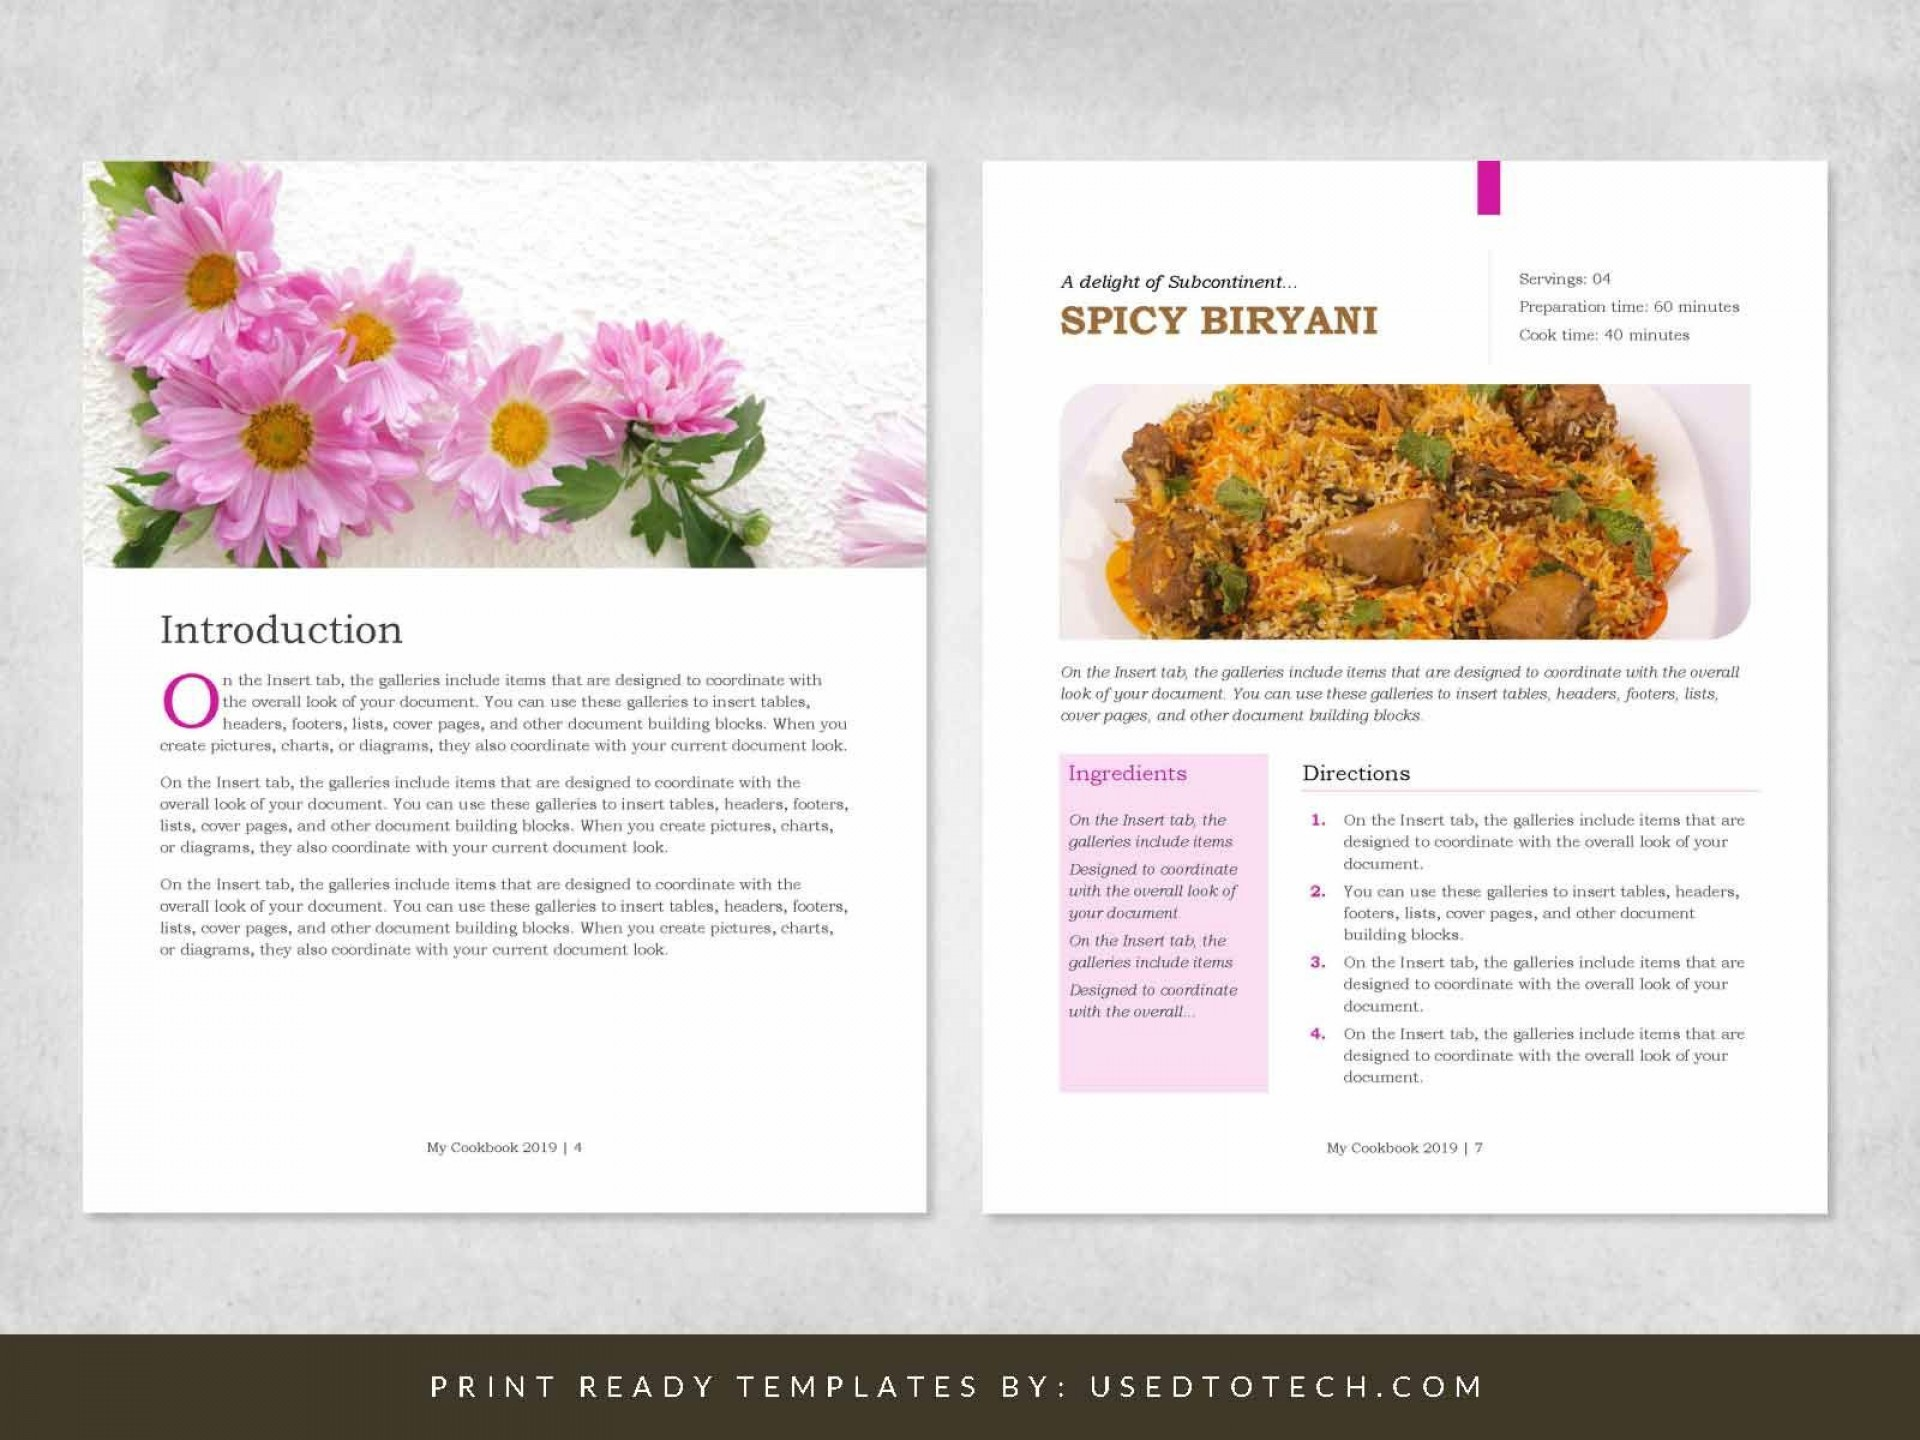 001 Magnificent Create Your Own Cookbook Template Idea  Make Free My1920